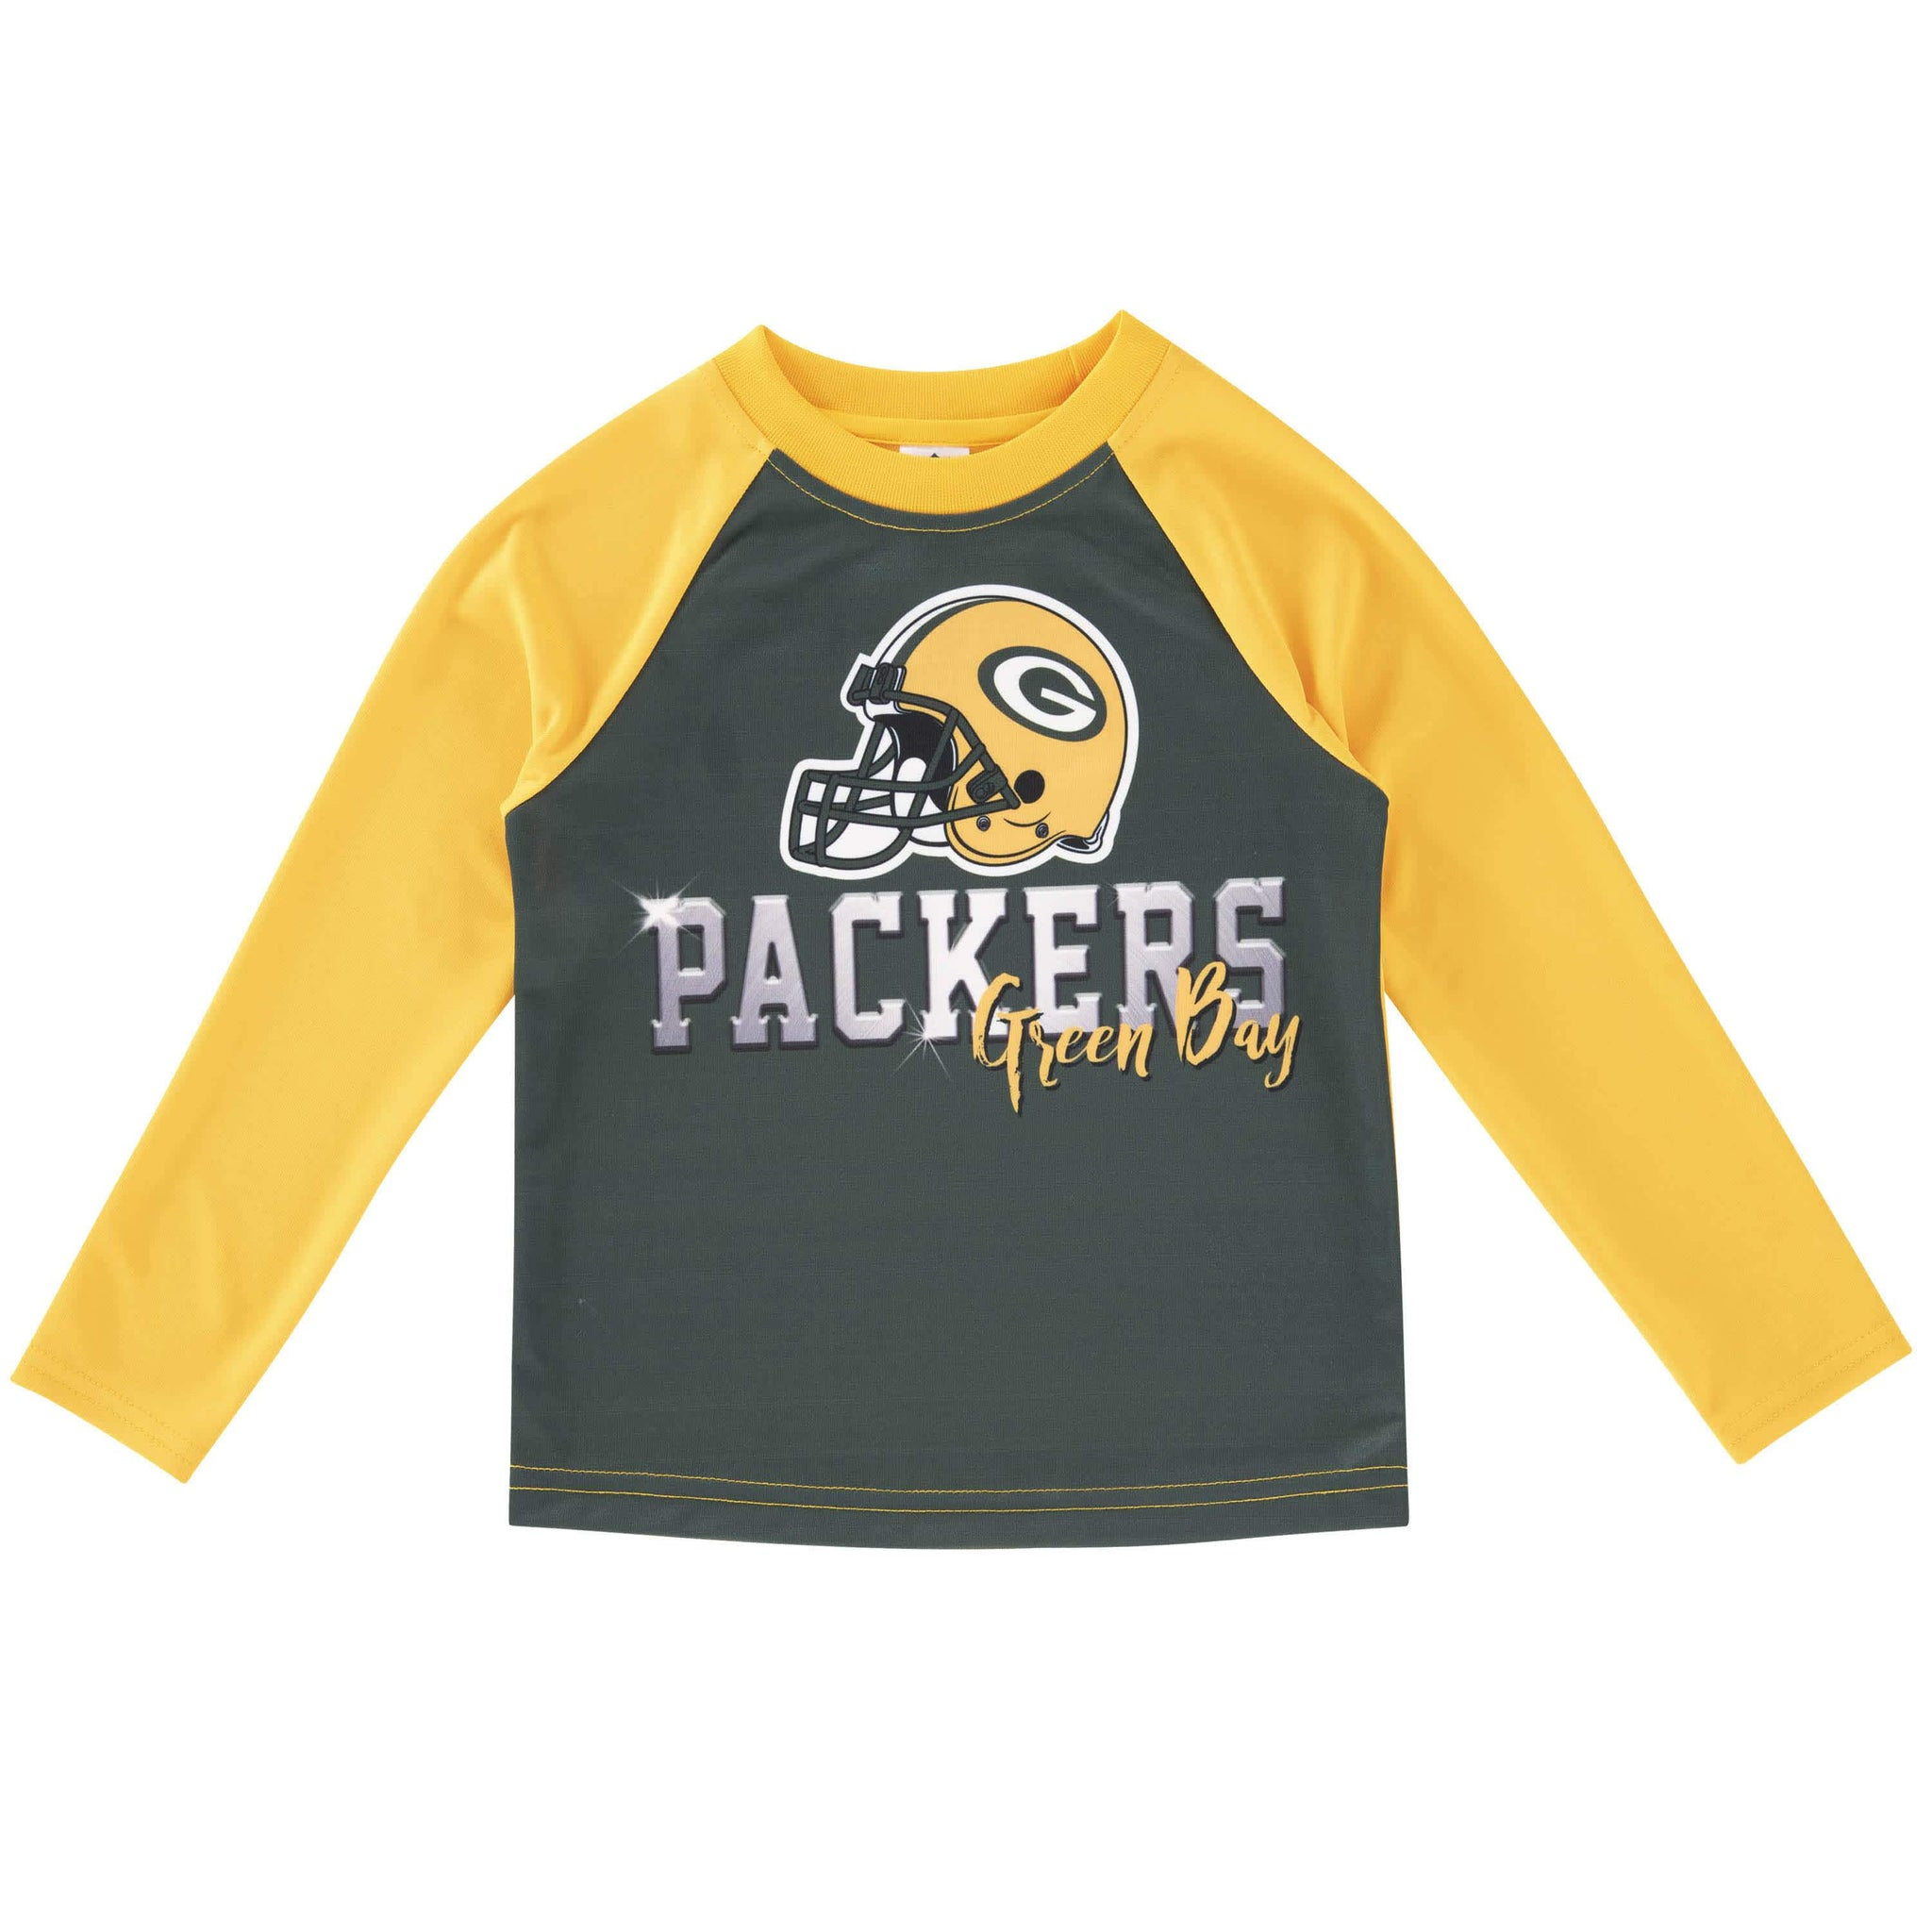 Green Bay Packers Long Sleeve Tee Shirt